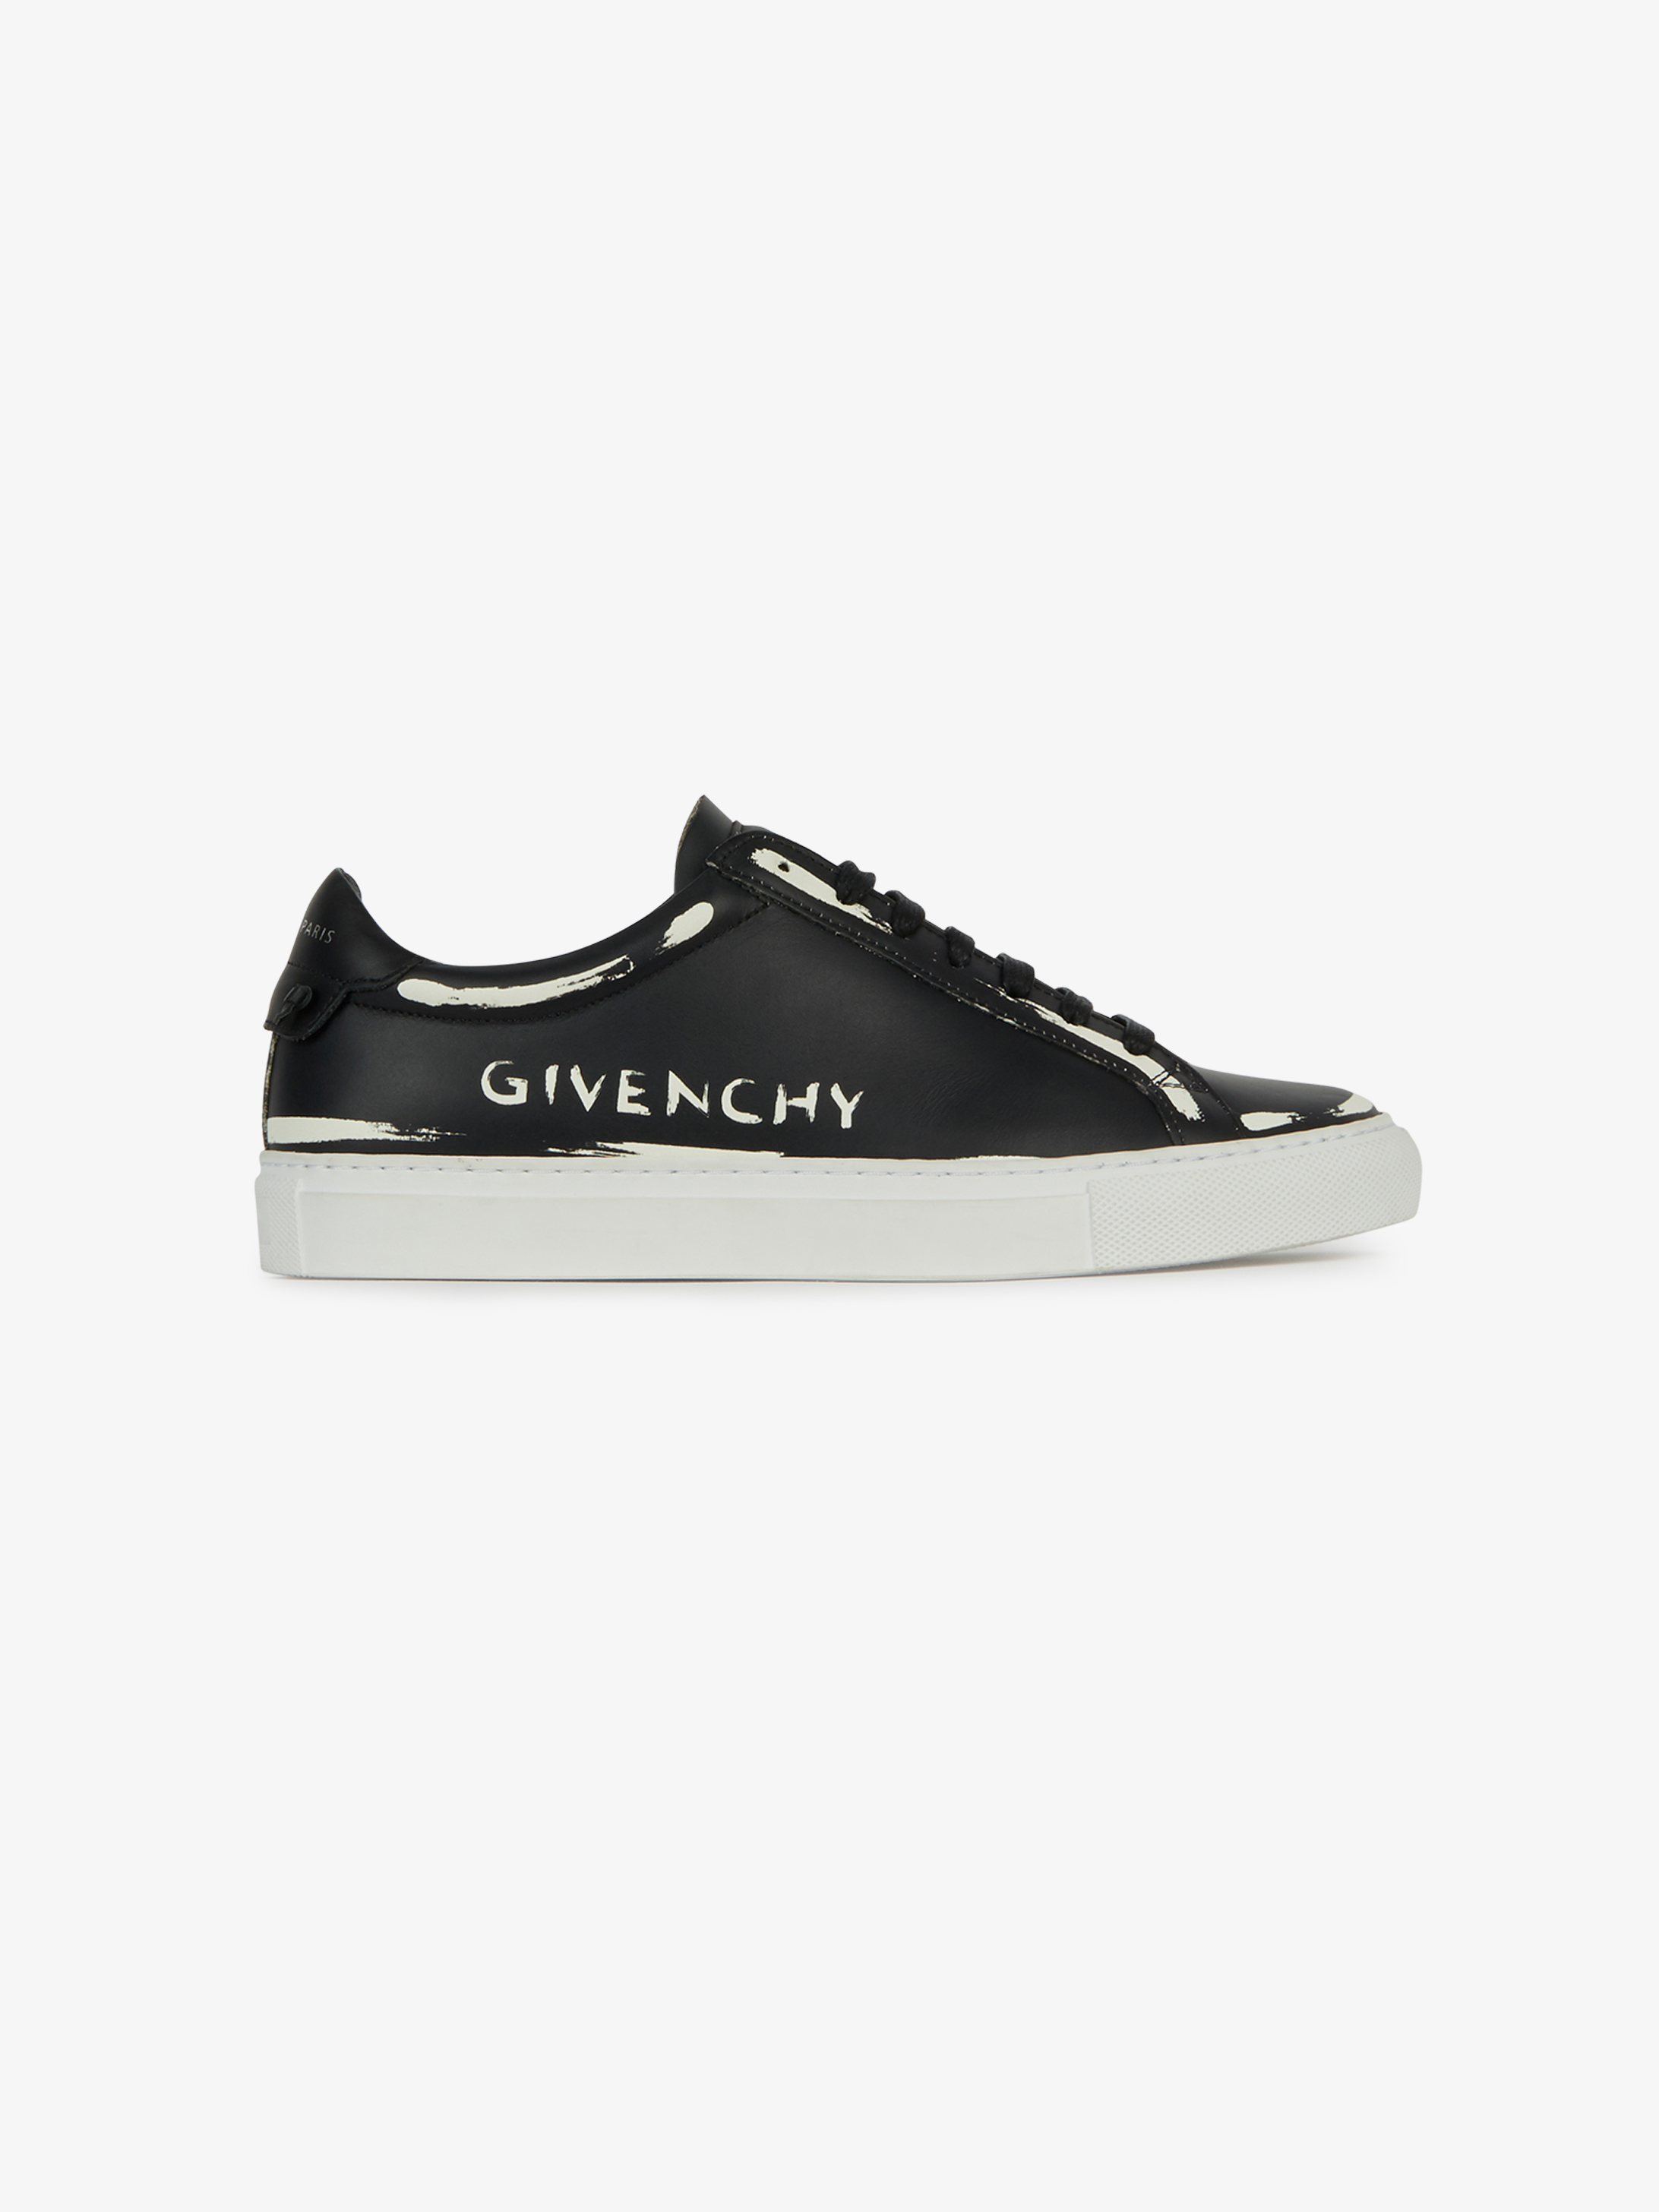 GIVENCHY print sneakers in leather